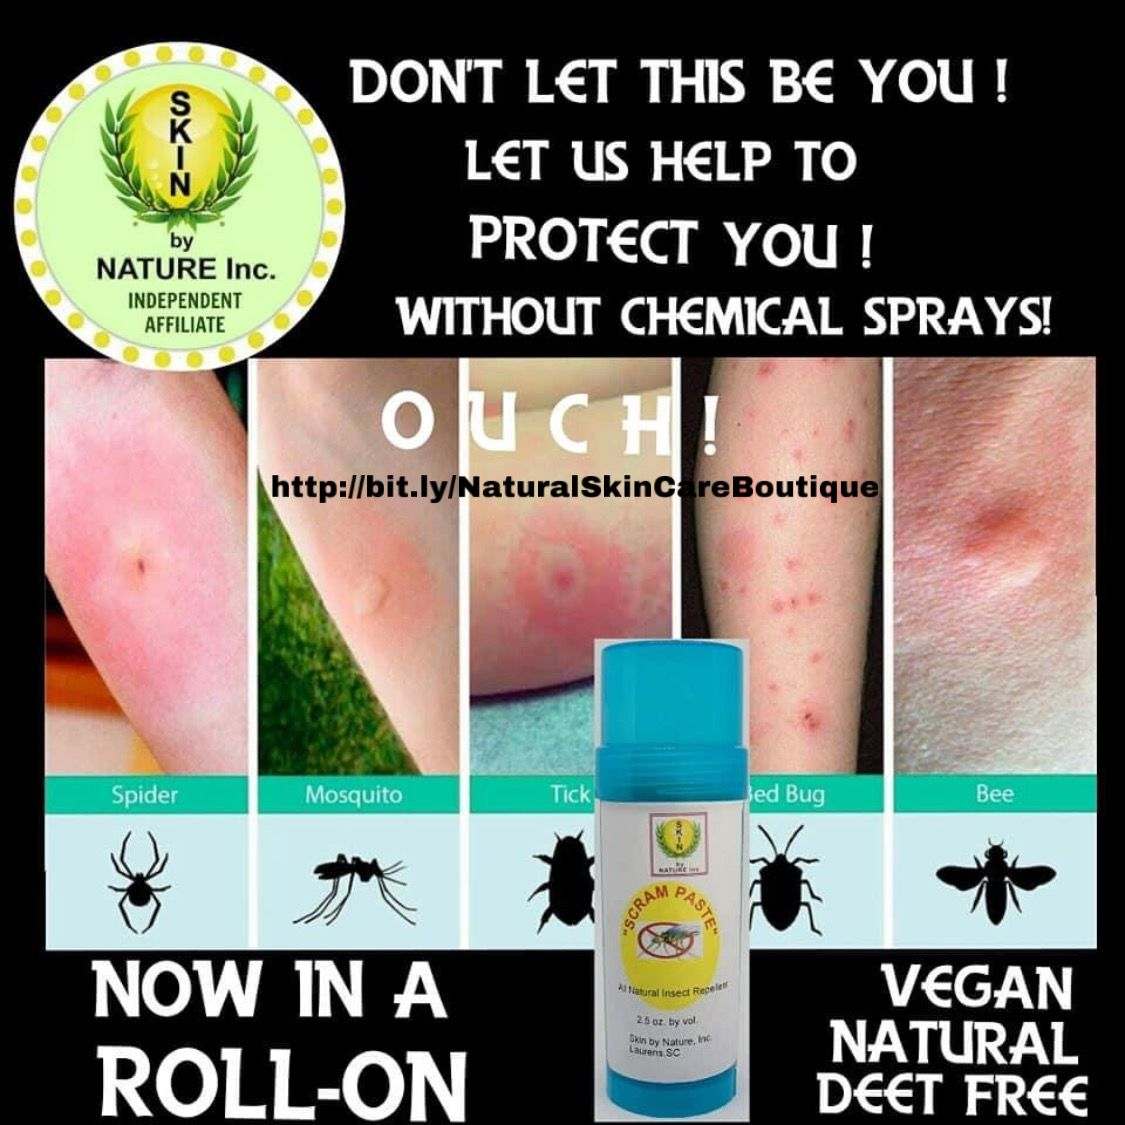 #scram #repellent #allnatural #insect #giftideas #affordable